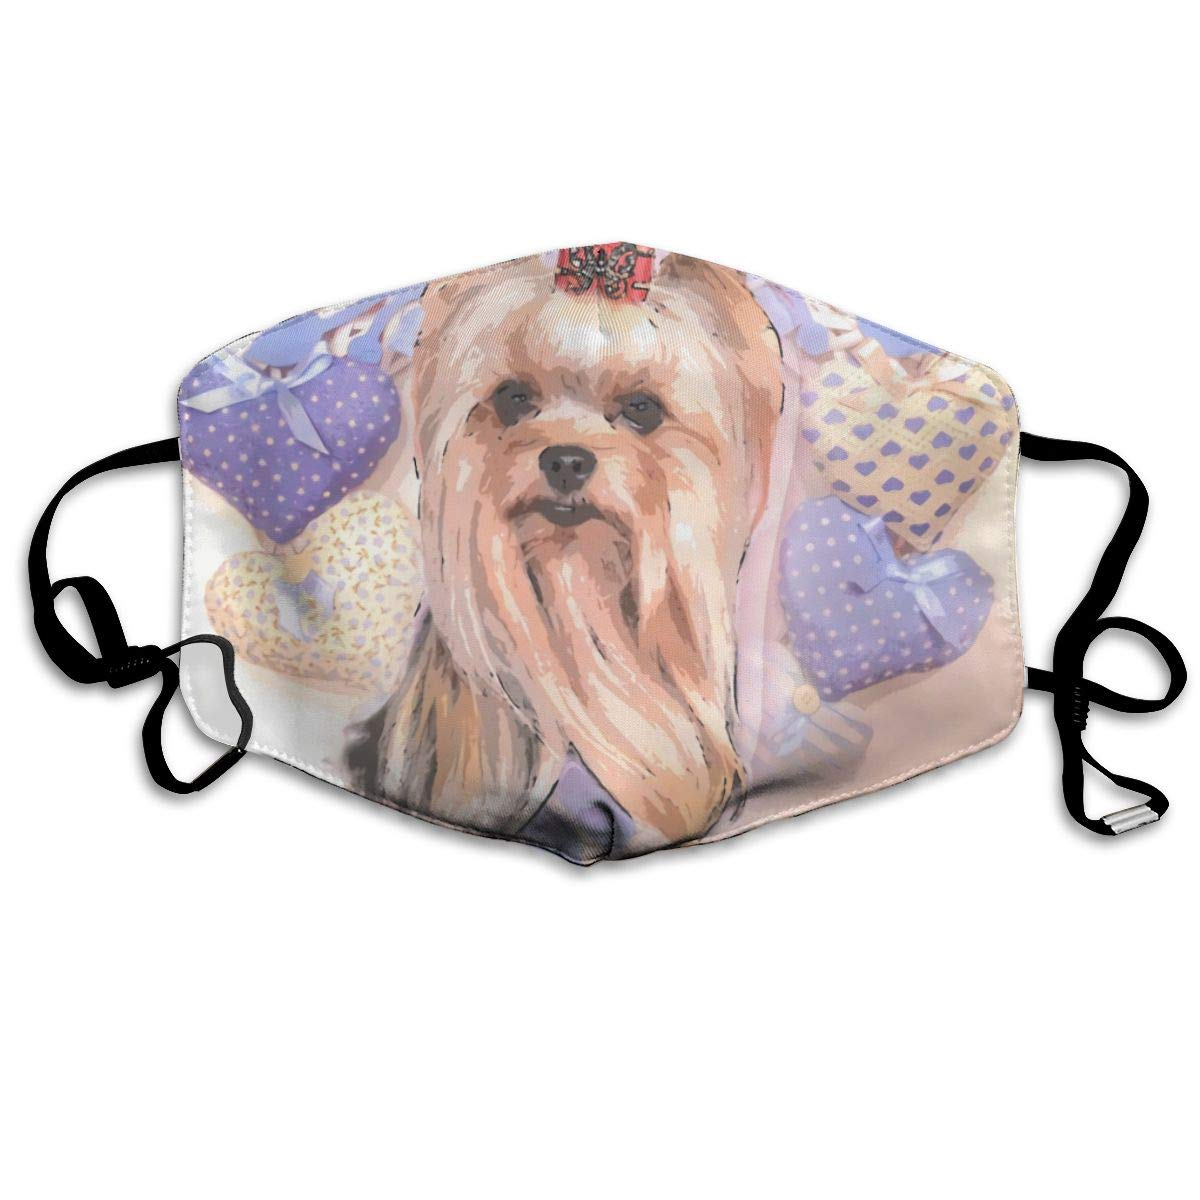 Yorkie Sweet Washable Reusable   Mask, Cotton Anti Dust Half Face Mouth Mask For Kids Teens Men Women With Adjustable Ear Loops